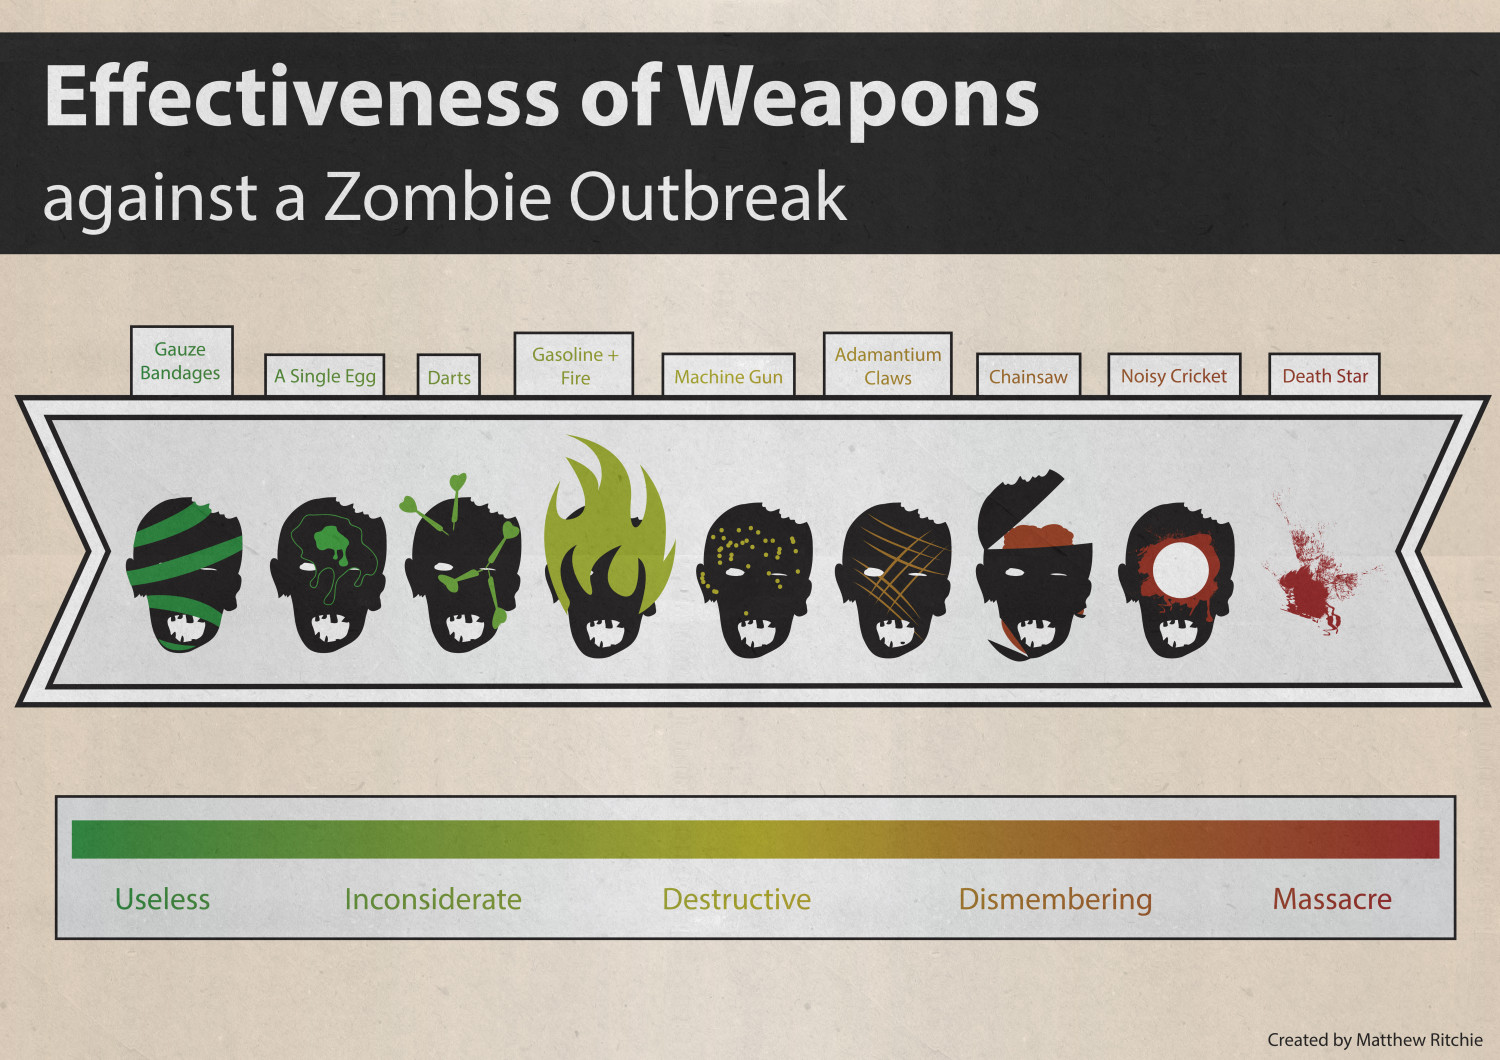 Effectiveness of weapons (against a zombie outbreak) Infographic